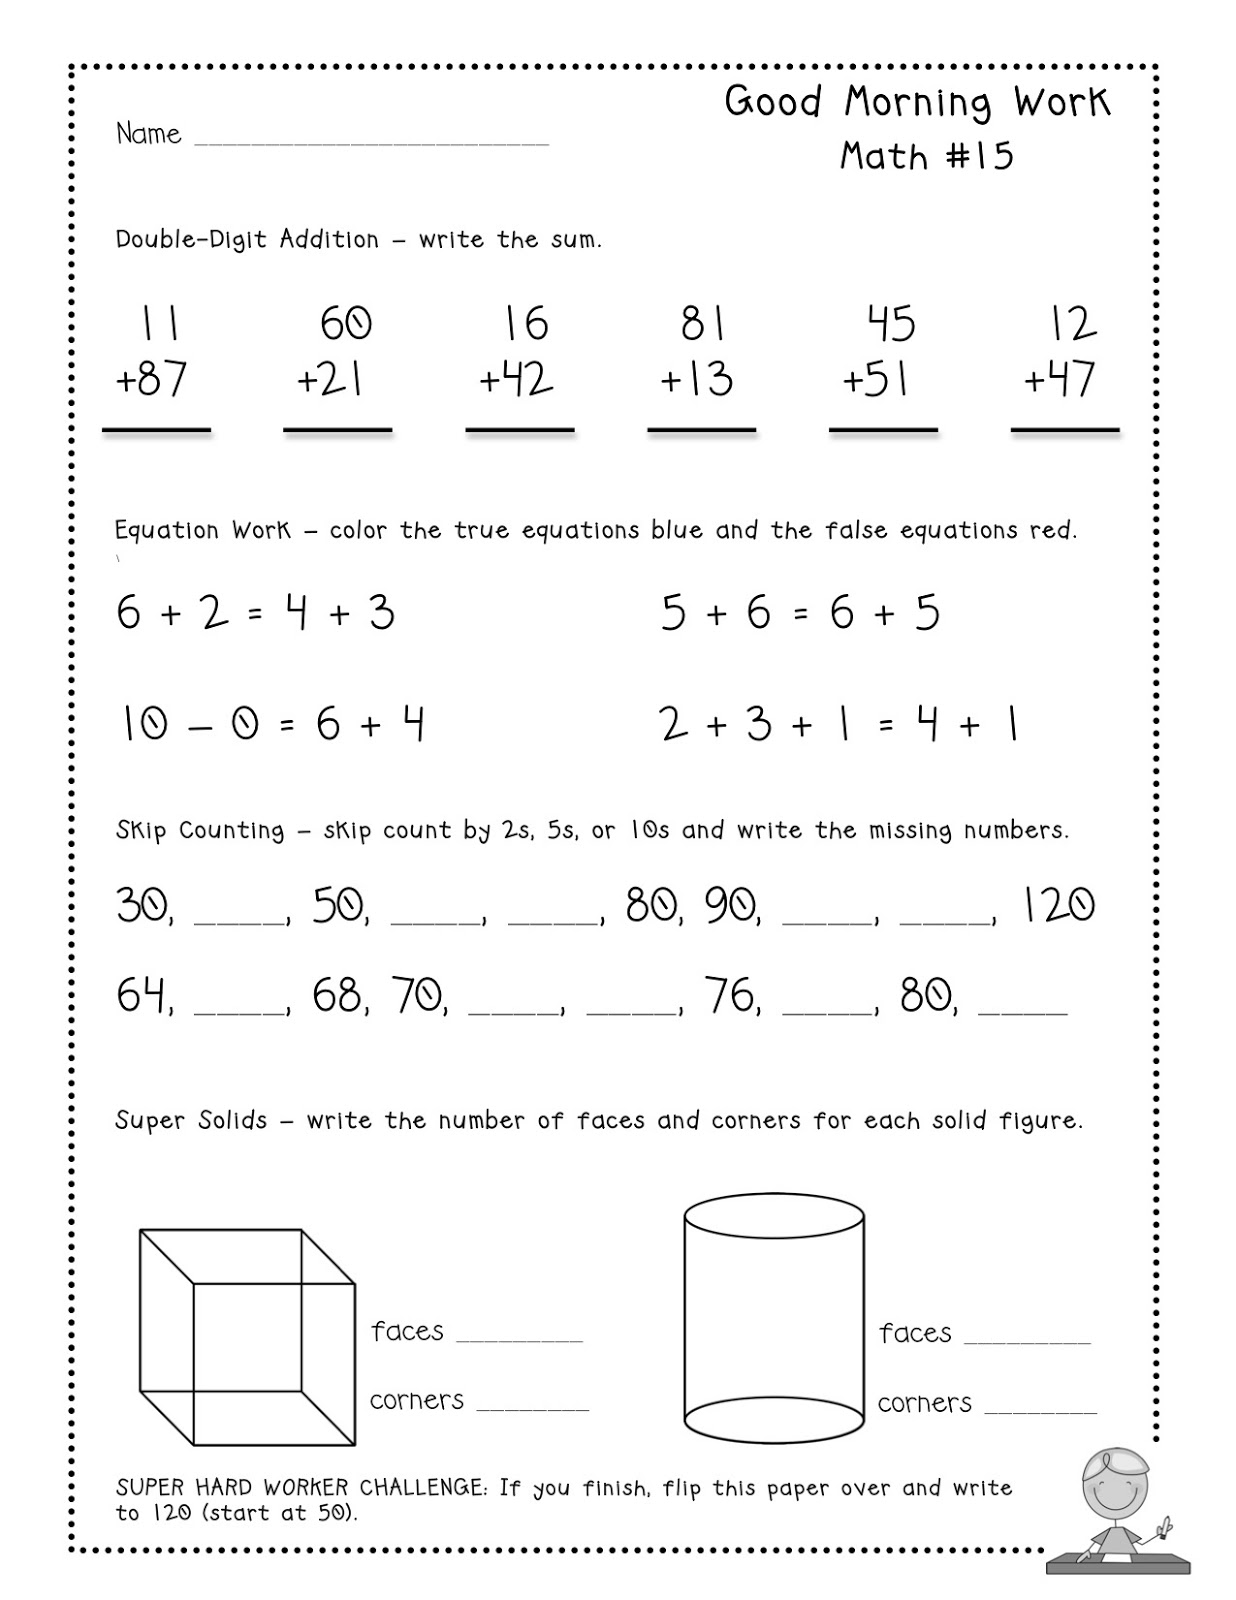 hight resolution of 2nd Grade Morning Work Worksheets   Printable Worksheets and Activities for  Teachers